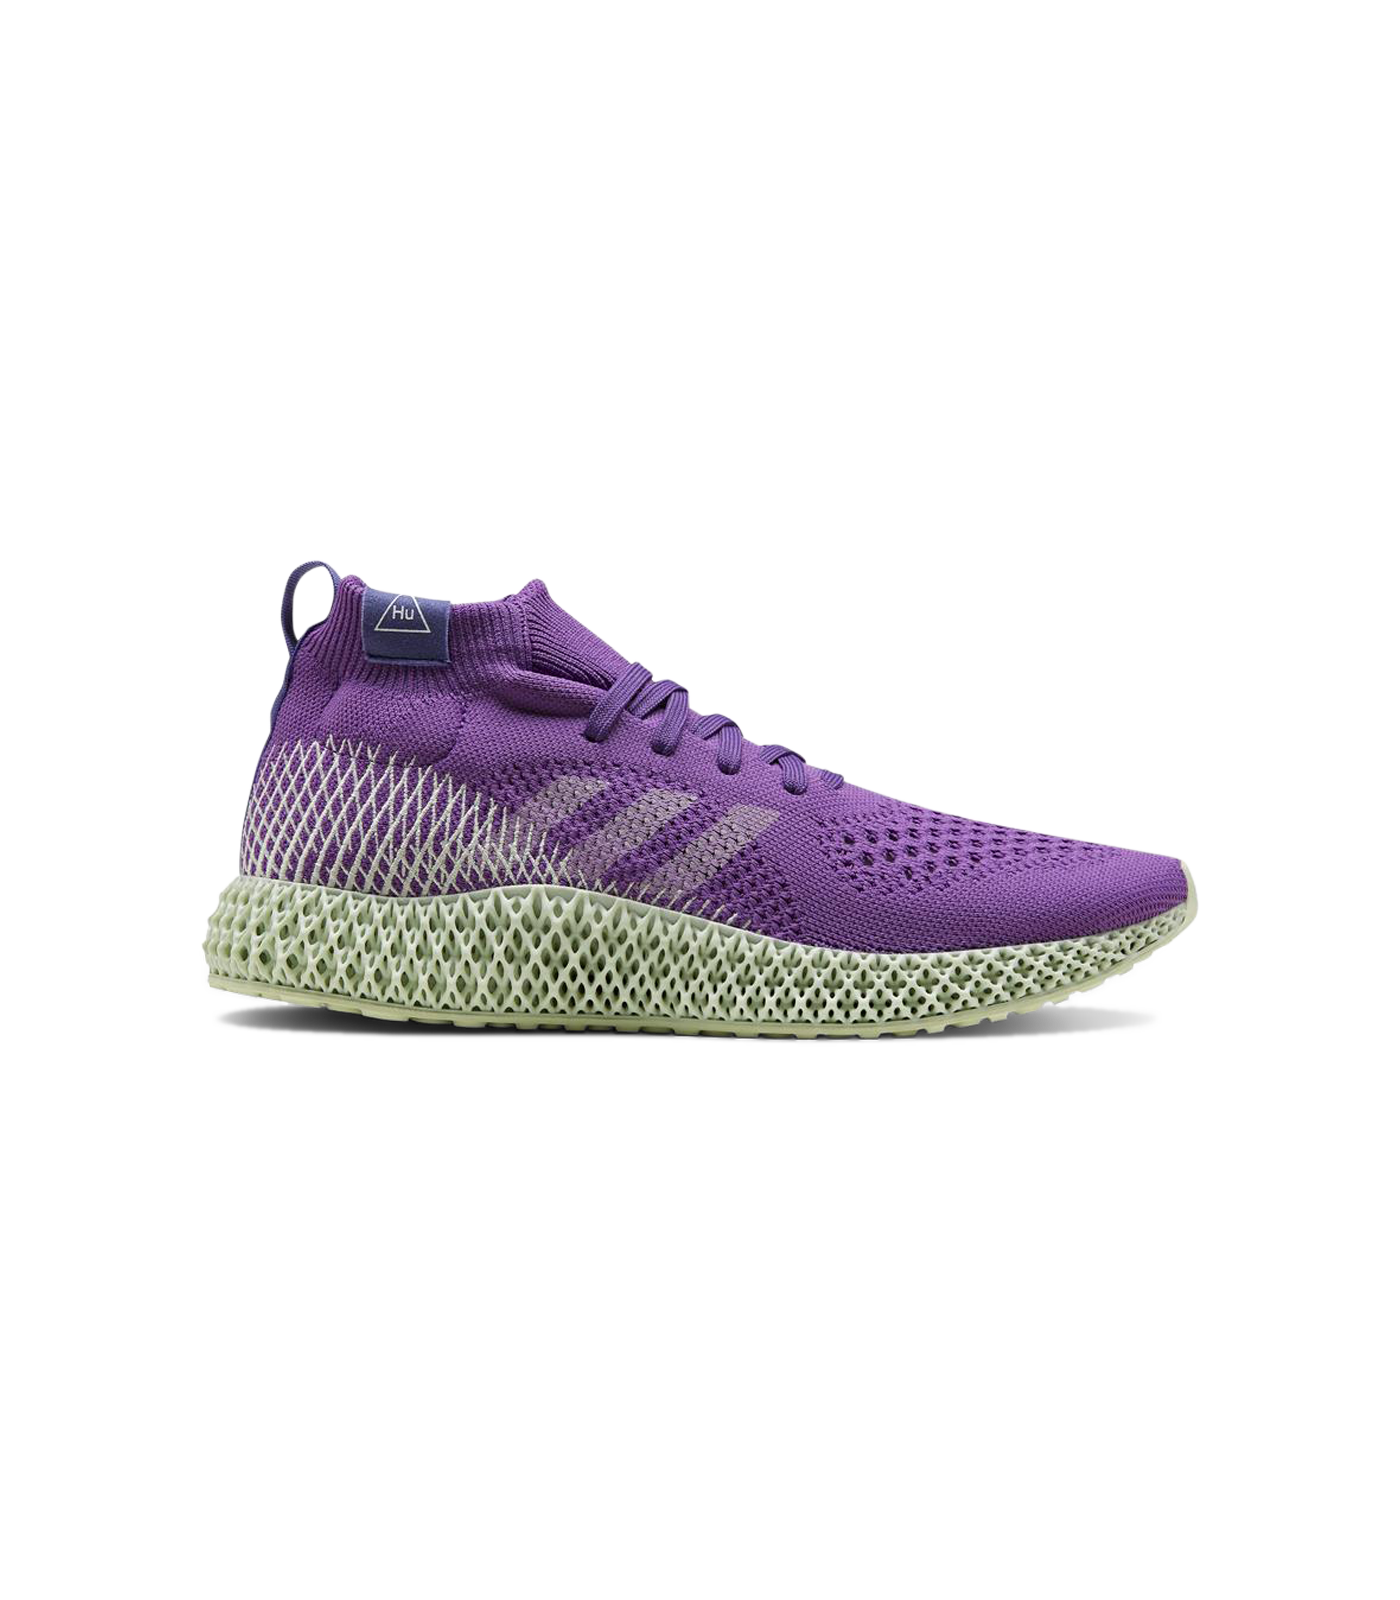 PHARRELL WILLIAMS 4D - PURPLE